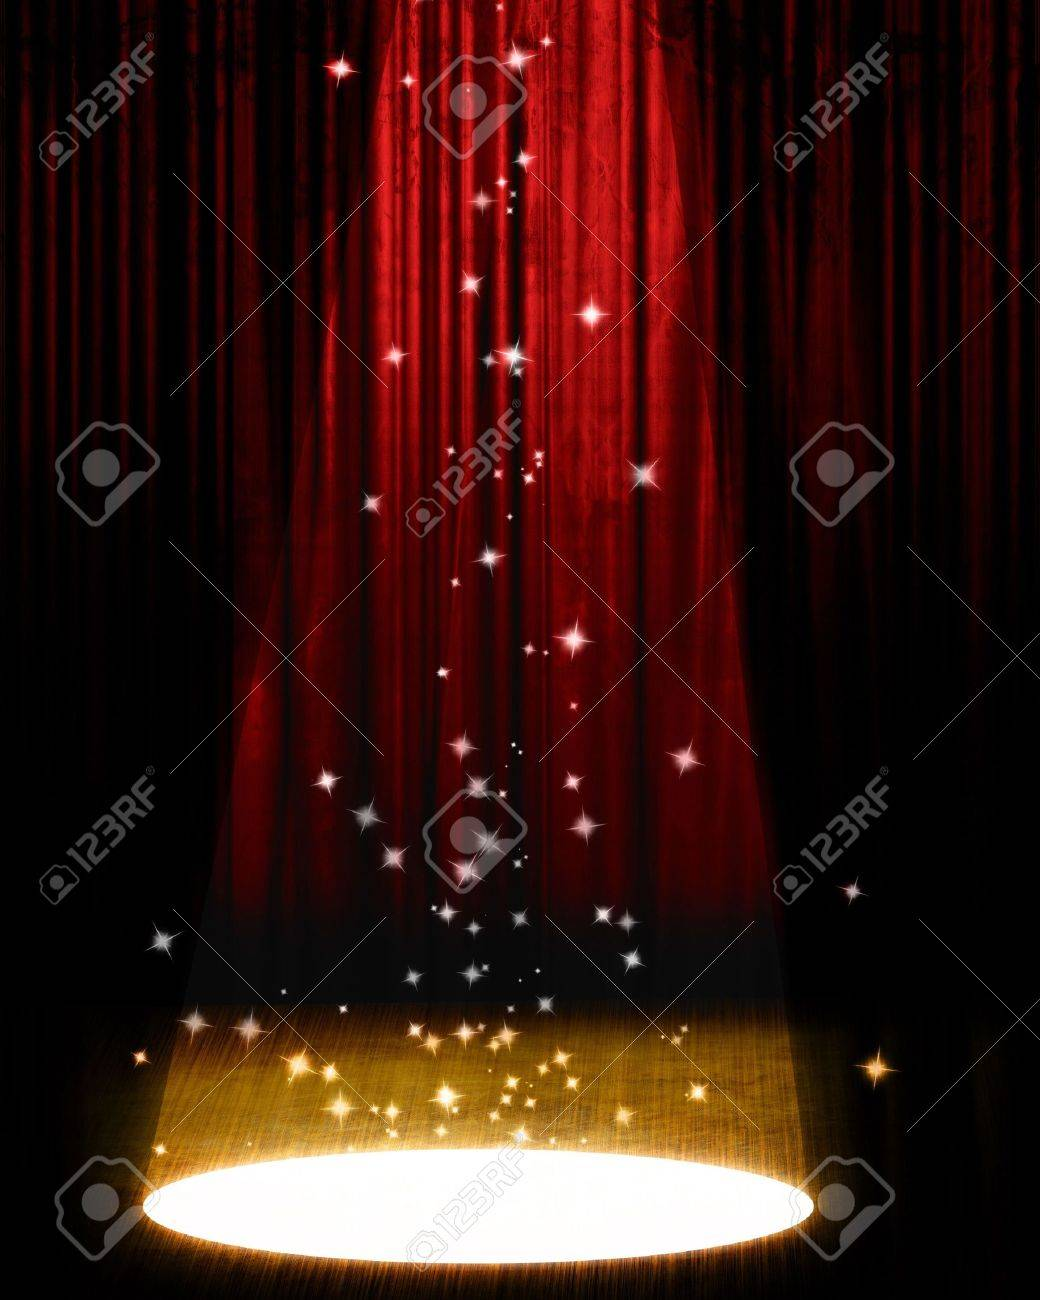 Stage curtains spotlight - Movie Or Theater Curtain With Bright Spotlight Stock Photo 3688735